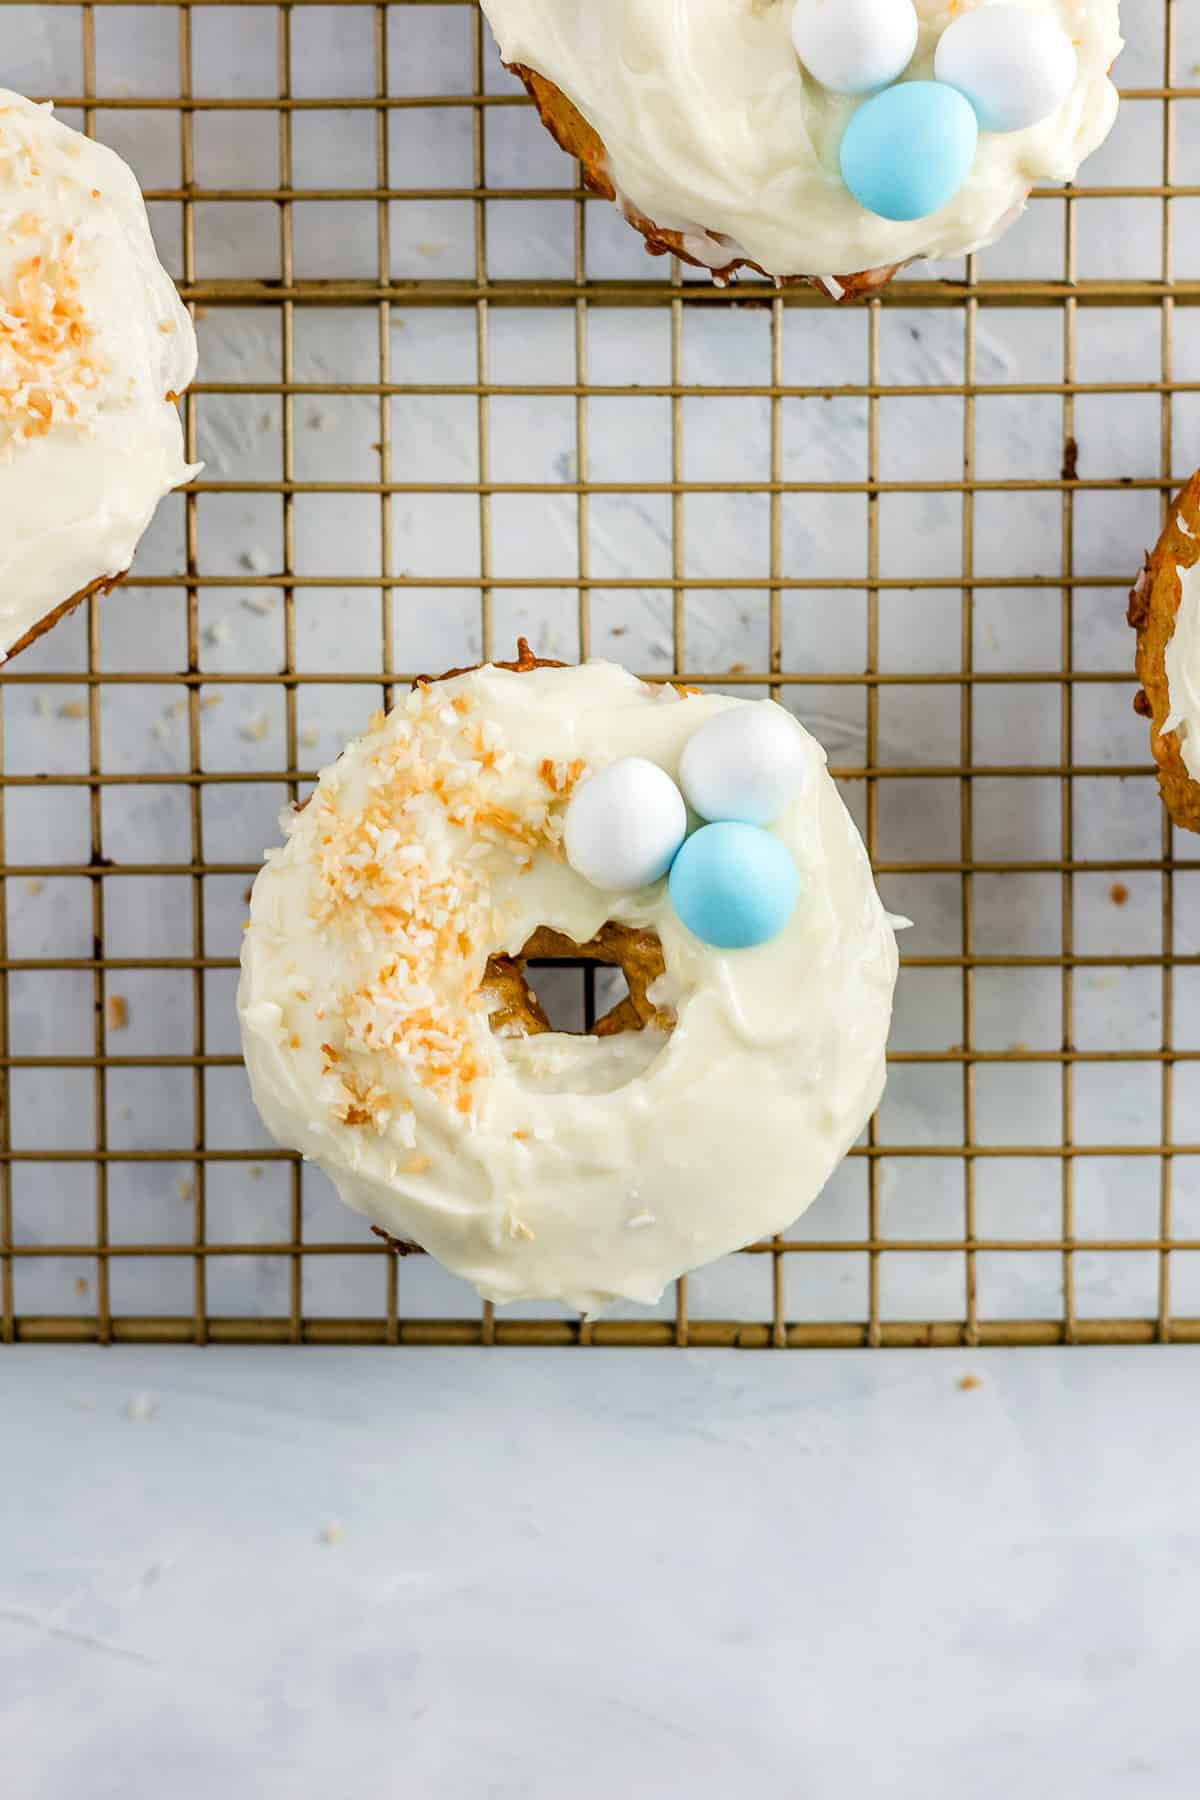 These irresistible Baked Carrot Cake Donuts with Cream Cheese Frosting are so easy to make and are perfect for an Easter or spring brunch!